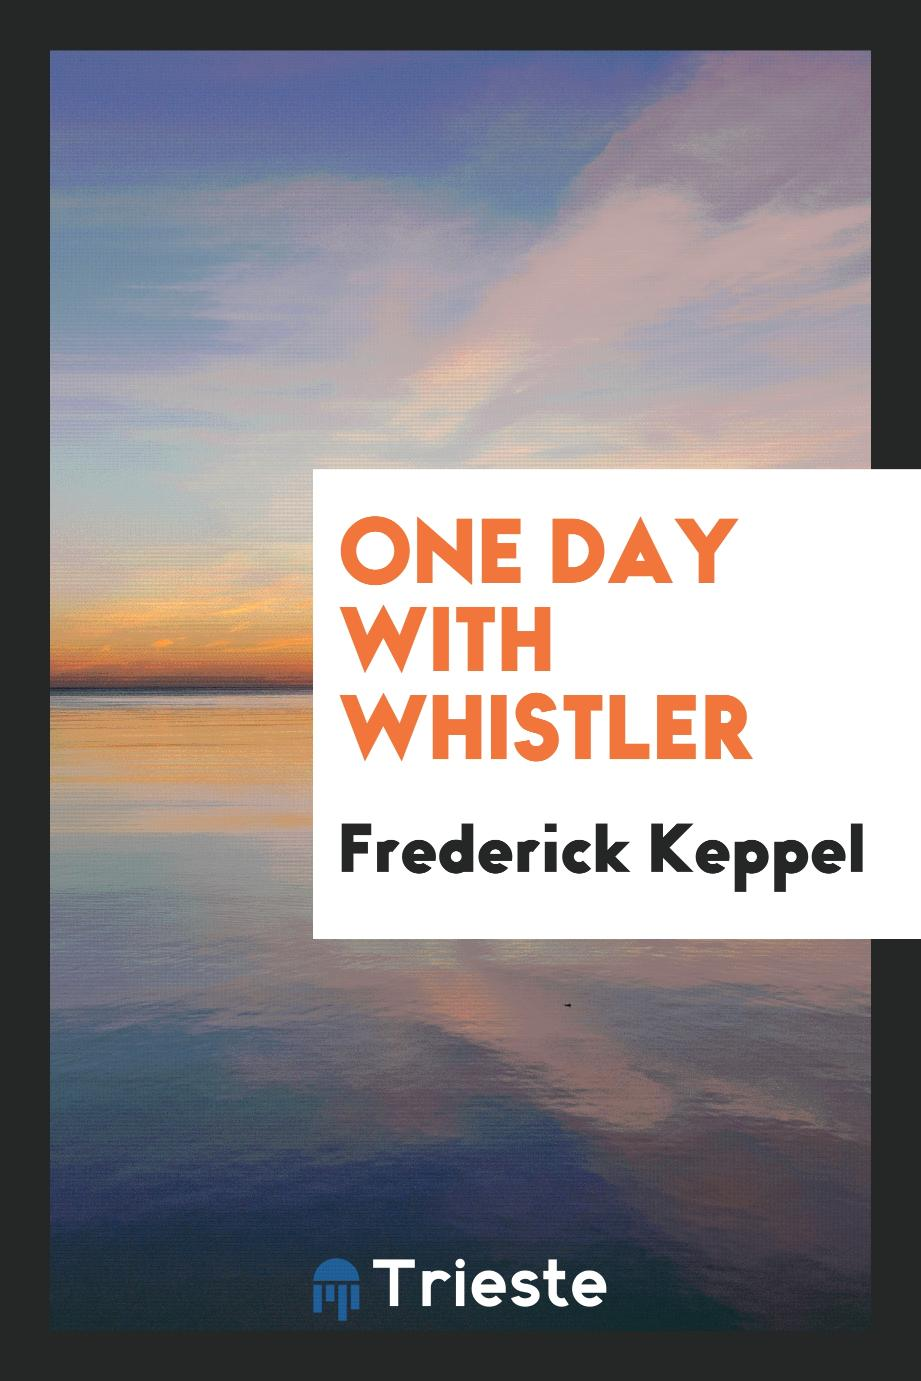 One Day with Whistler